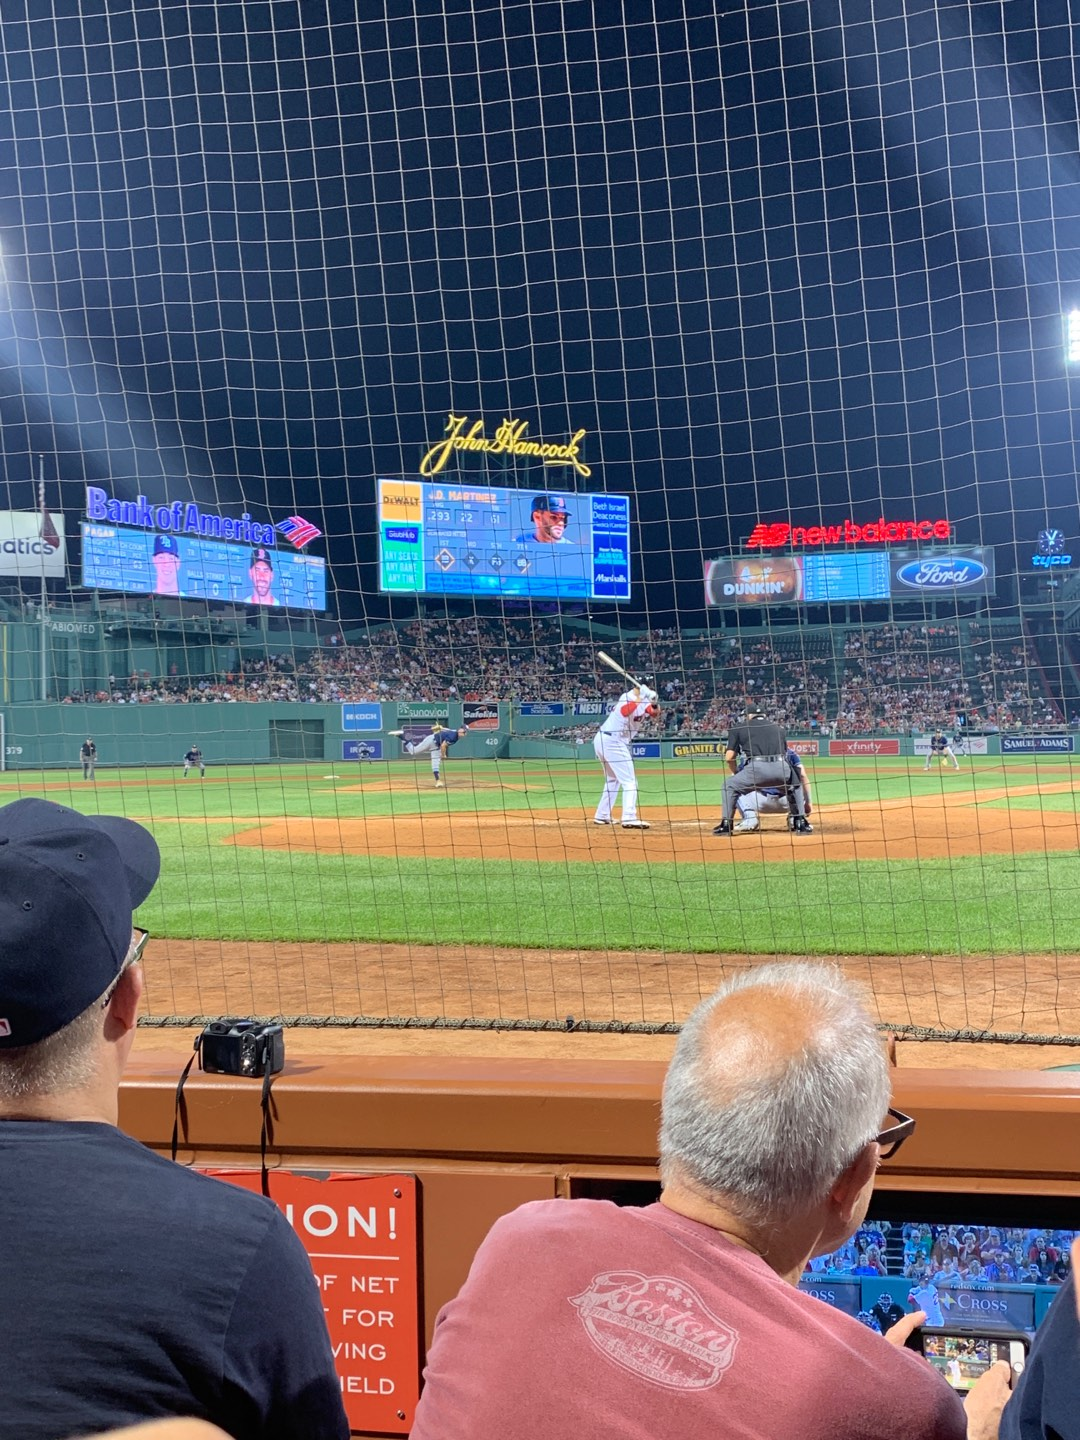 Fenway Park Section Field box 47 Row C